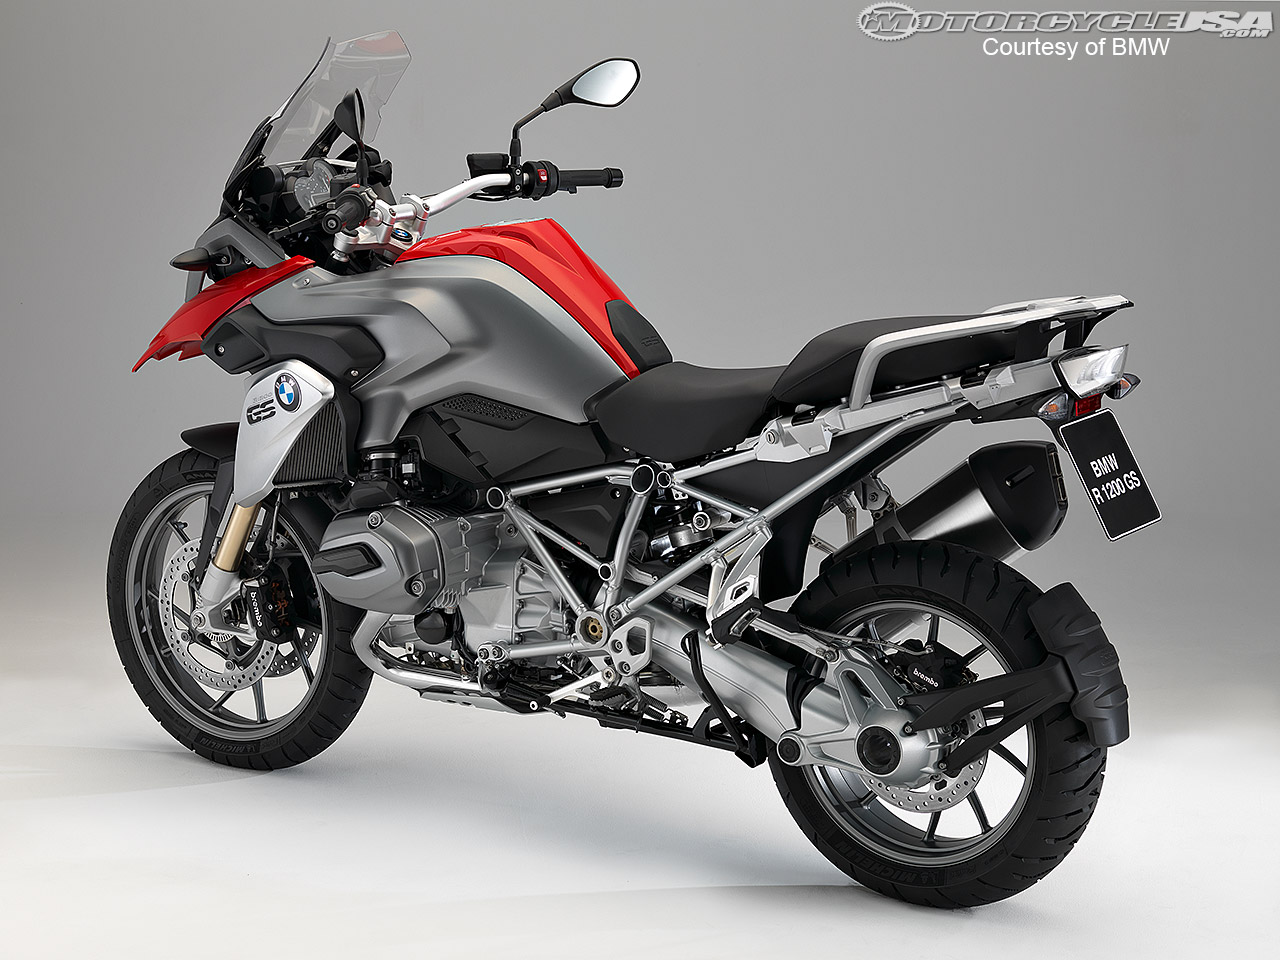 BMW R1200GS 2013 images #145767